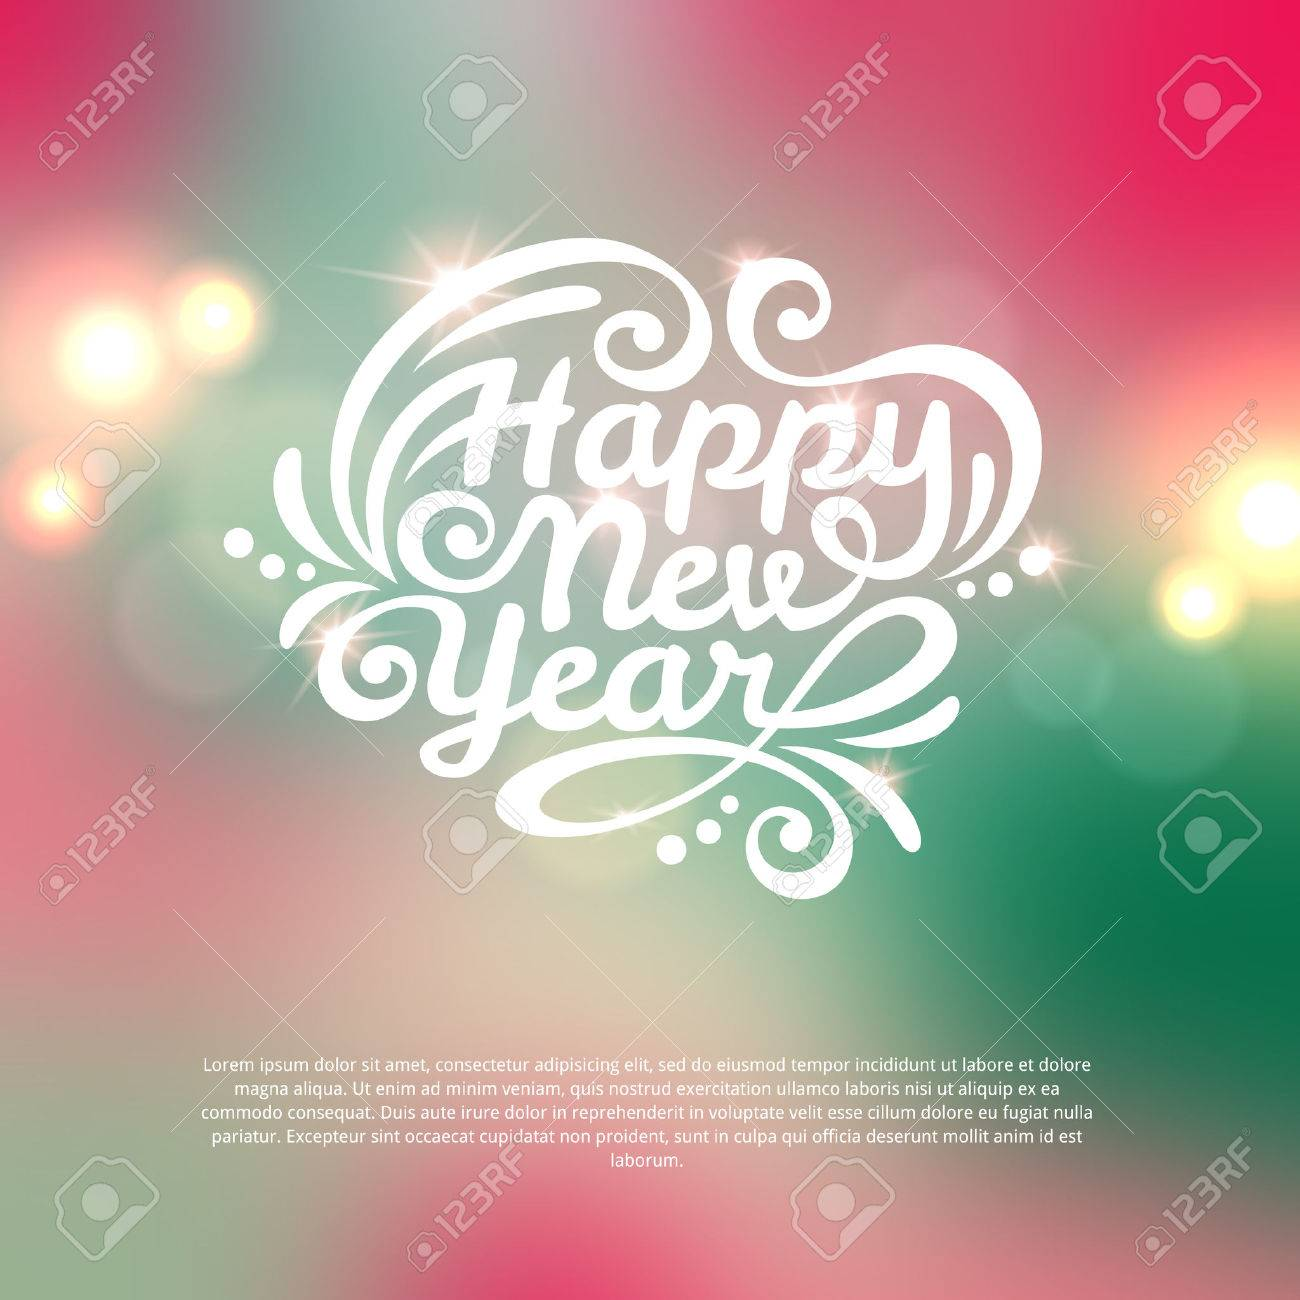 Happy new year lettering greeting card vector illustration happy new year lettering greeting card vector illustration blurred background with lights stock m4hsunfo